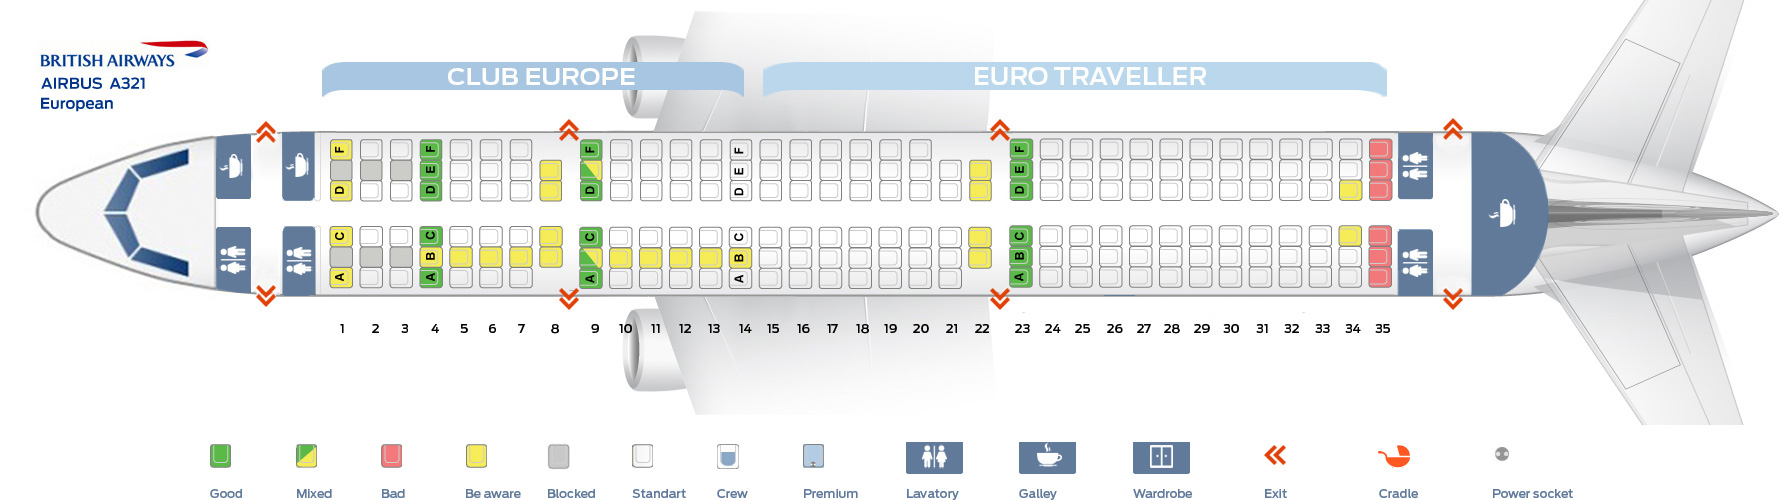 Seat_map_British_Airways_Airbus_A321_European